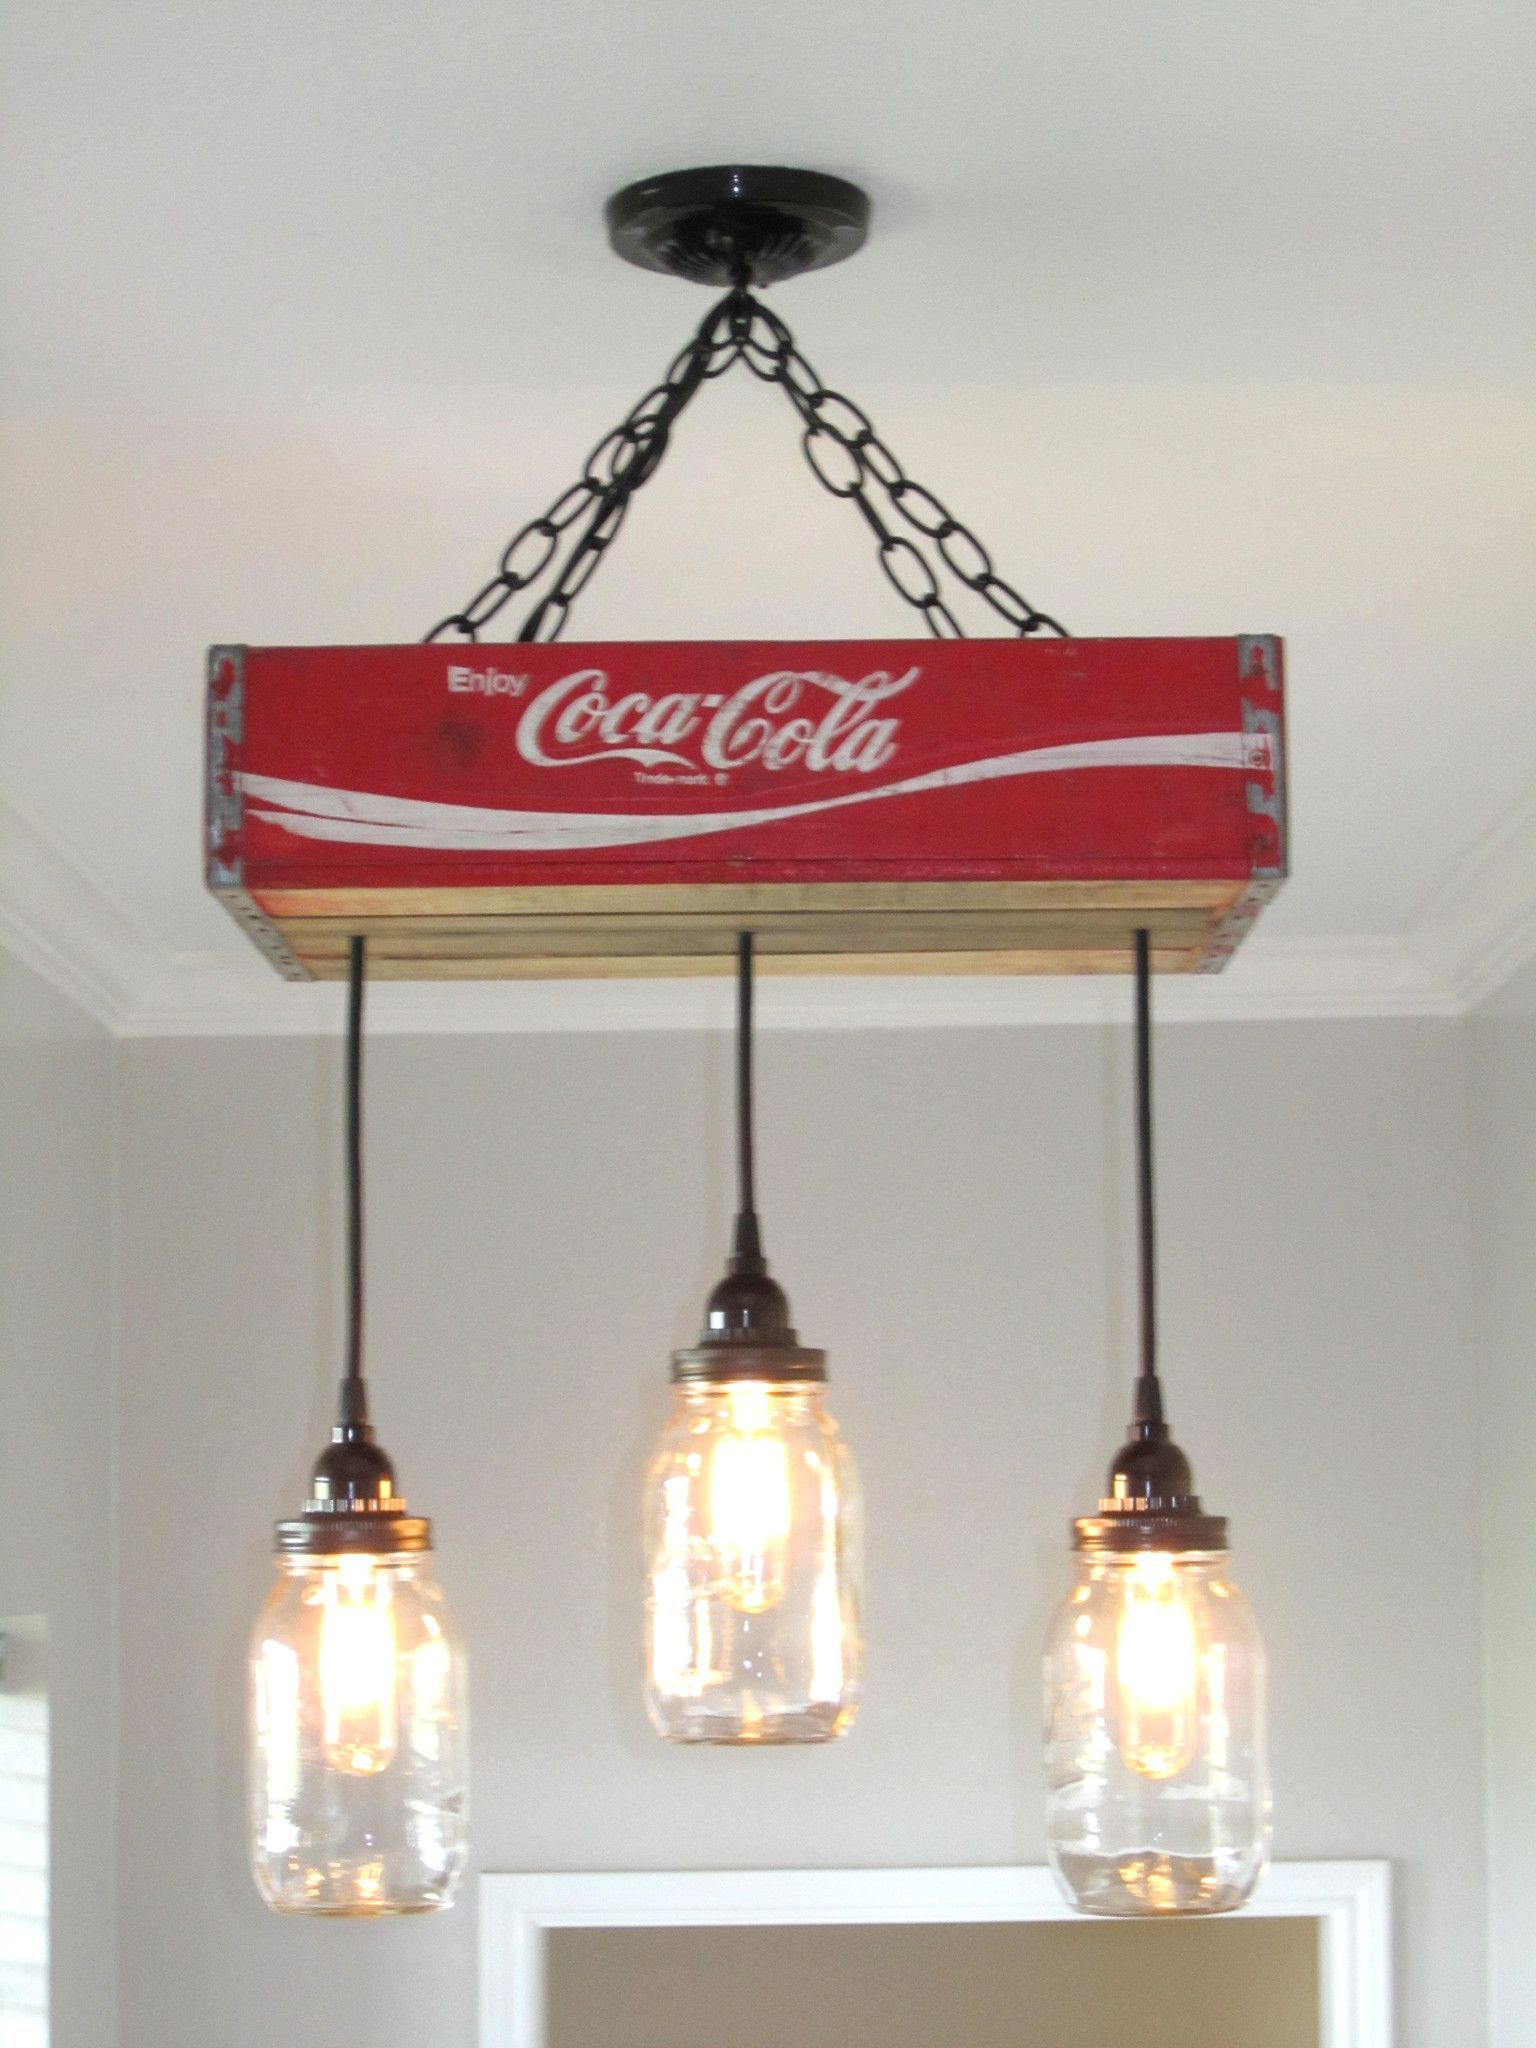 How cool are these these lights are handcrafted and made to coca cola chandelierceiling light with mason jars red mason jar lighting rustic lighting vintage coca cola mason jar decor rustic arubaitofo Image collections